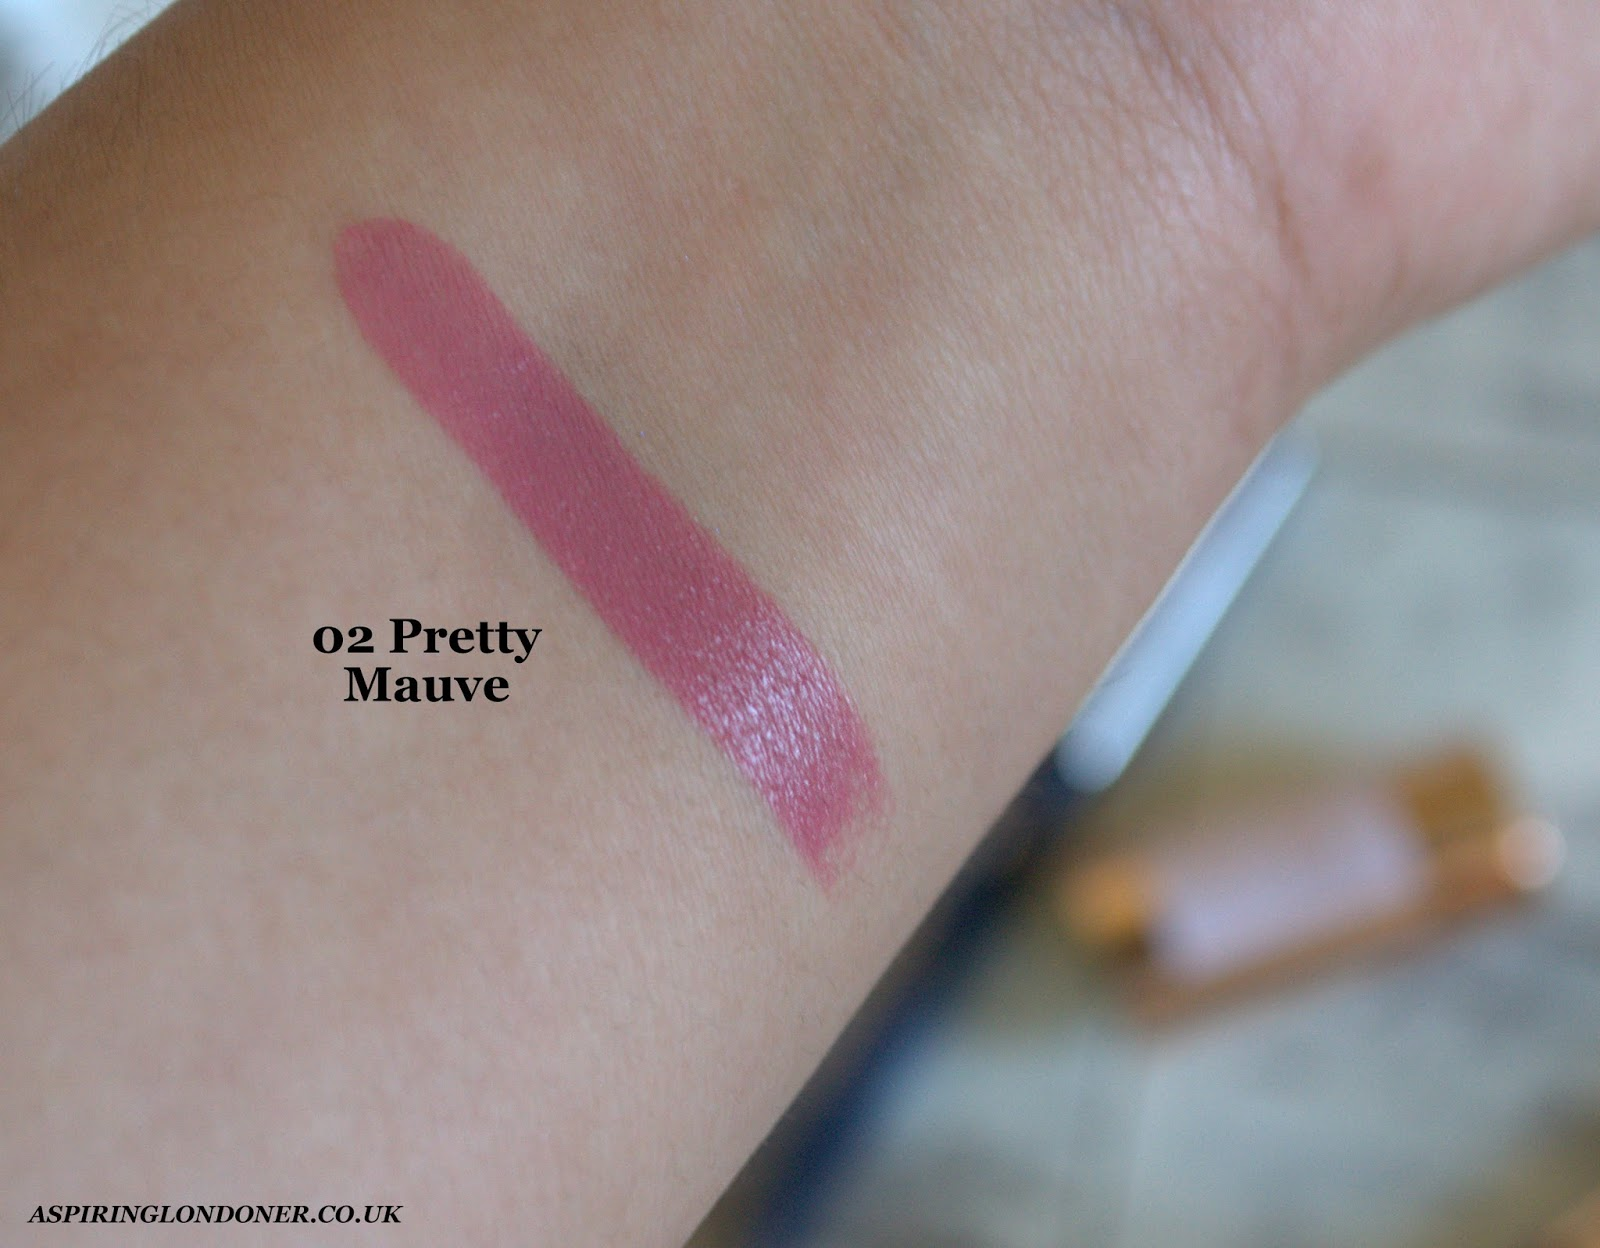 Kiko Rebel Romantic Intensely Lavish Lipstick Pretty Mauve Swatch - Aspiring Londoner